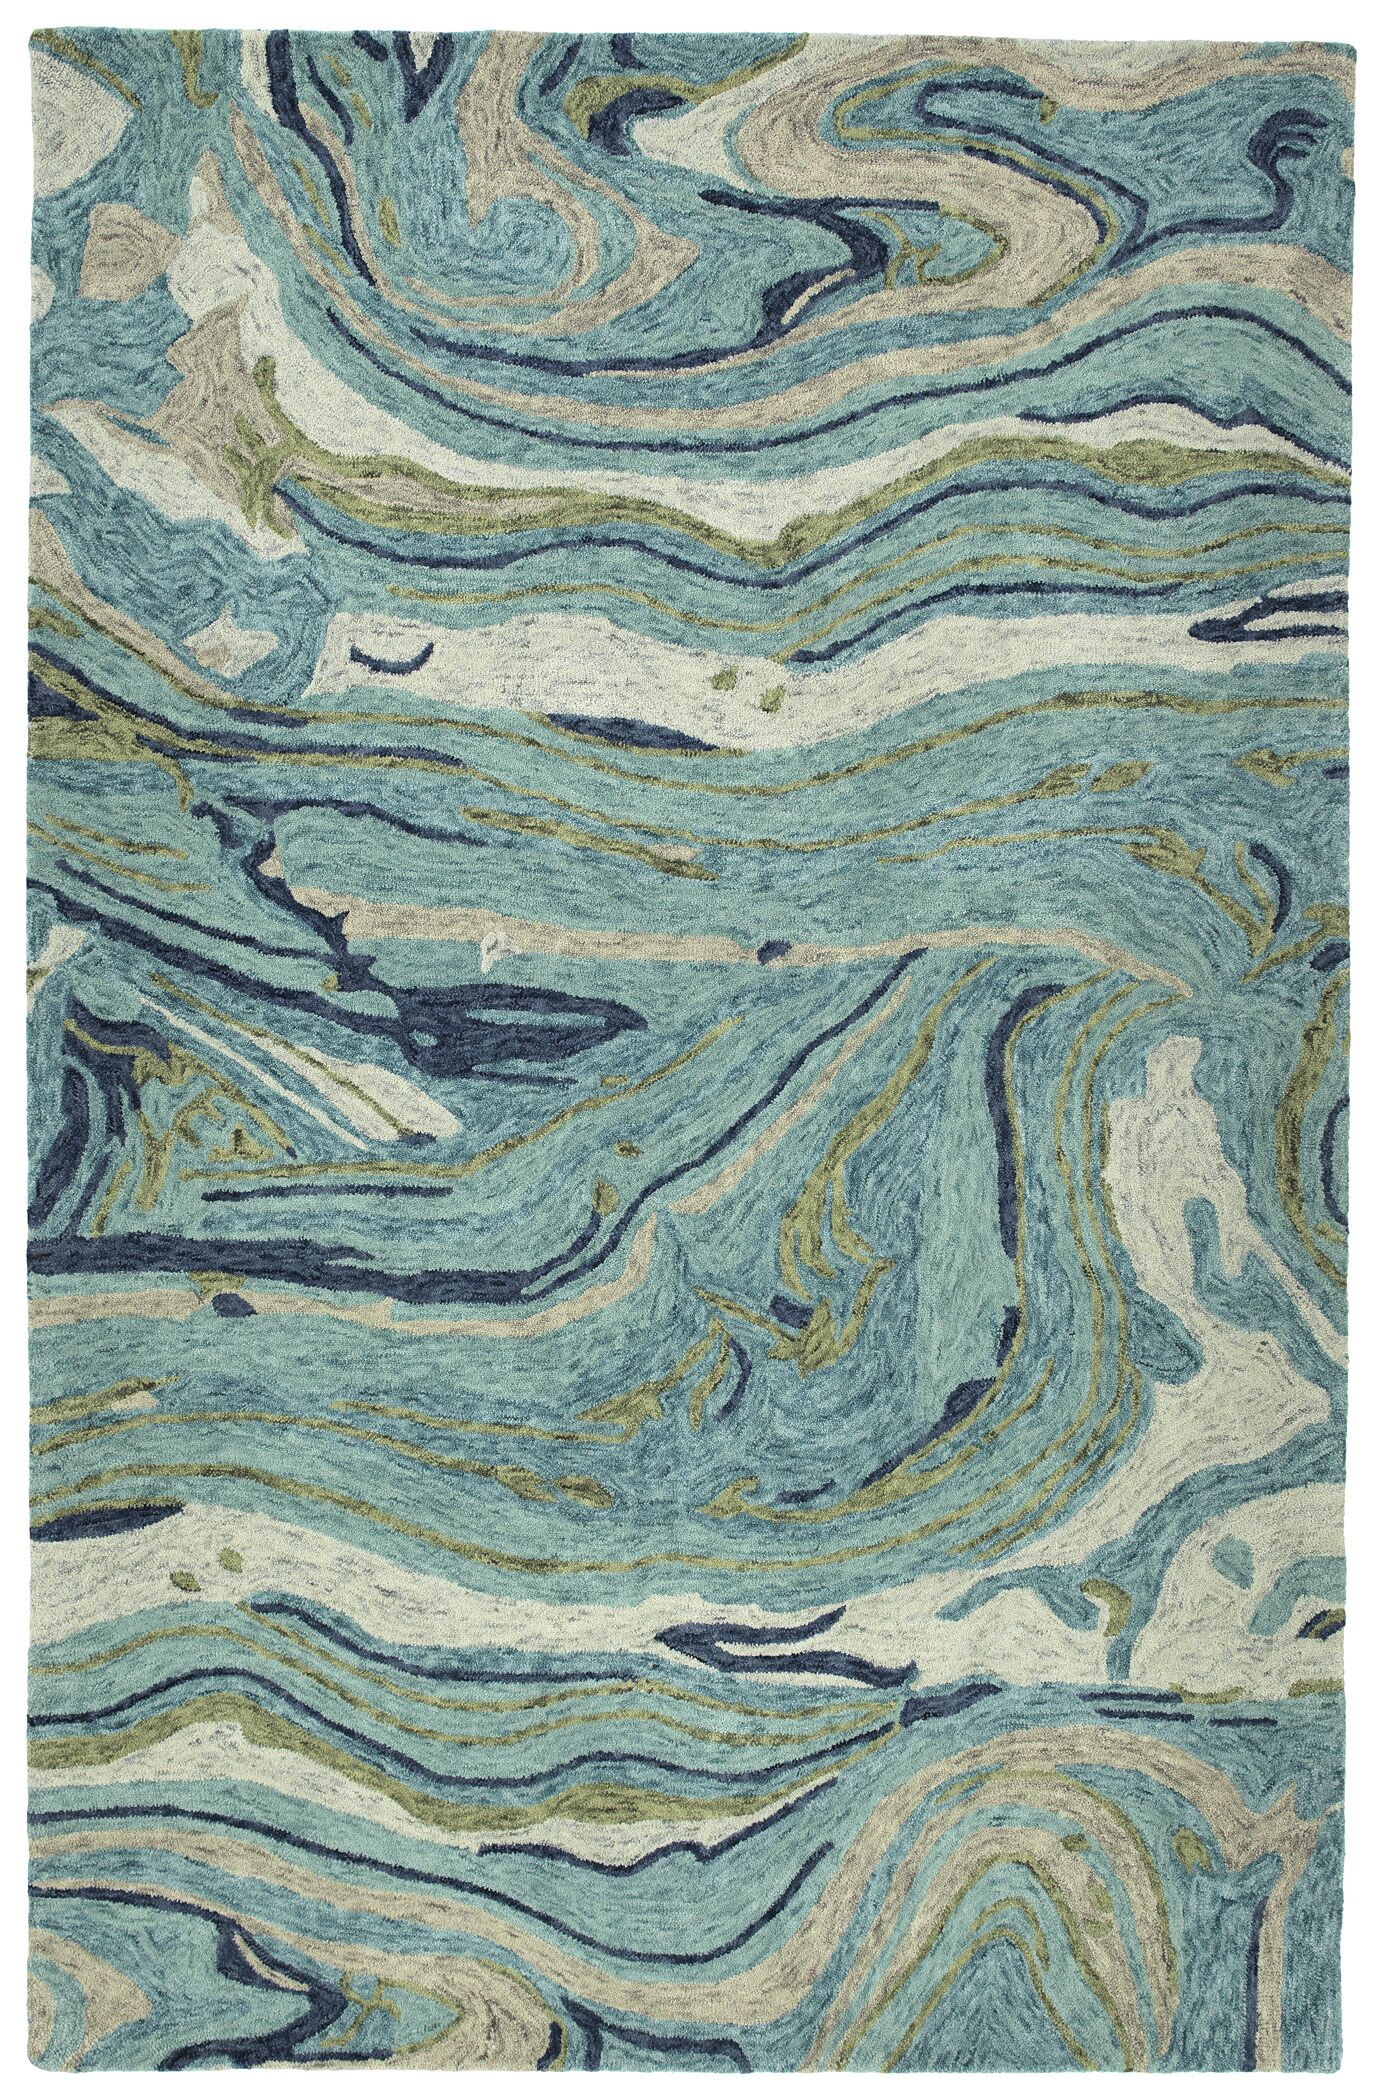 Bargas Hand Tufted Wool Teal Area Rug Rug Size: Rectangle 5' x 7'9